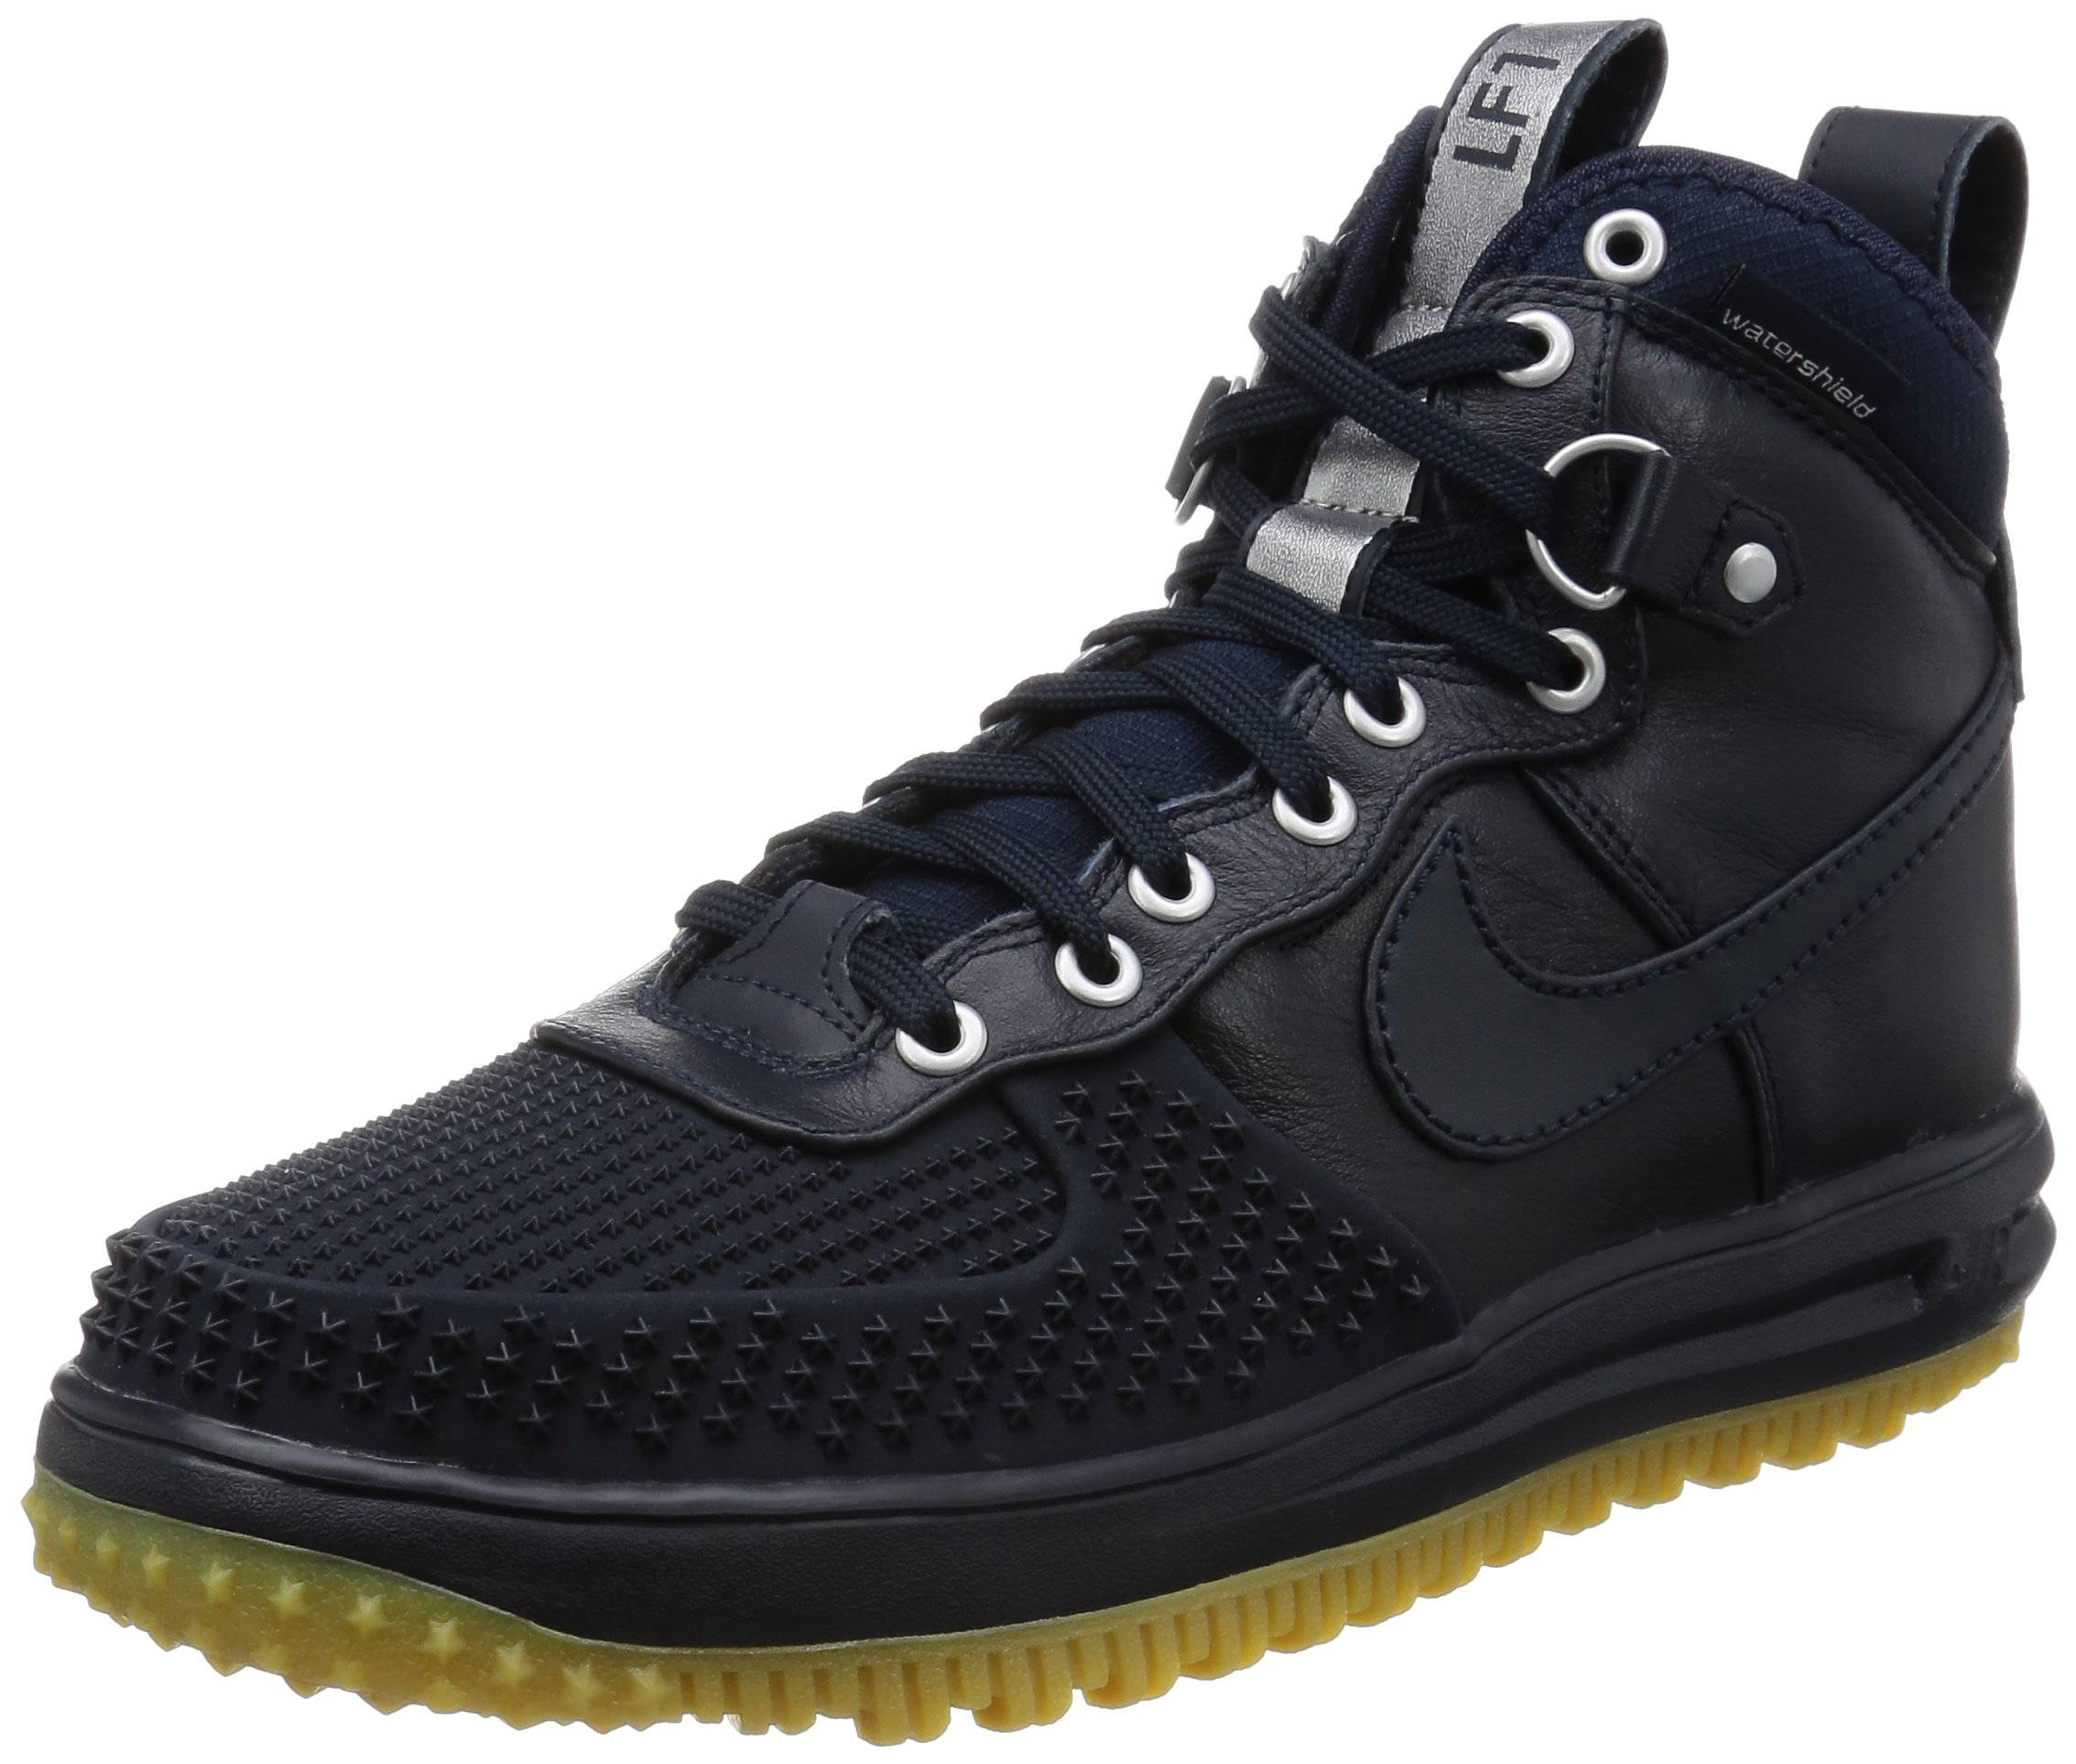 Nike Men's Lunar Force 1 Duckboot Dark Obsidian/Dark Obsidian Boot 9 Men US by NIKE